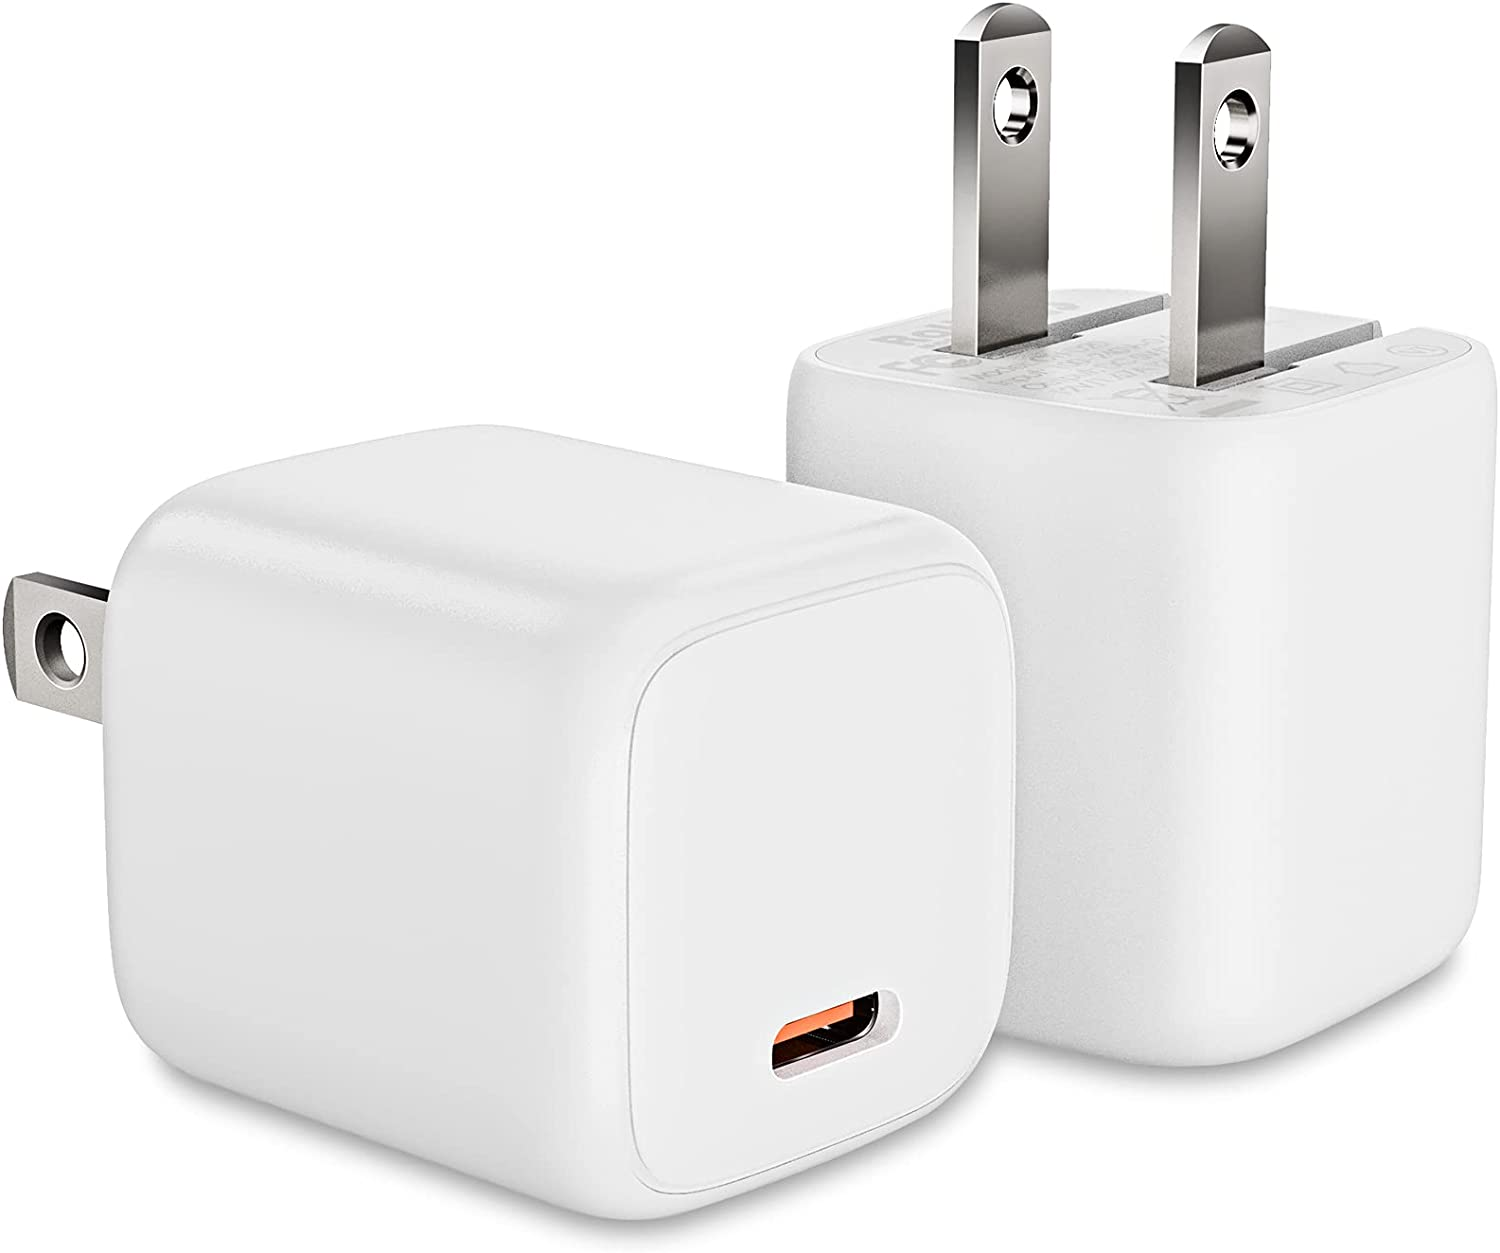 OBOVO 20W 2-Pack Nano USB-C Charger Adapter, PD Fast Charger with Foldable Plug,Ultra Compact for iPhone 12/12 Mini/12Pro/12 Pro Max/11/11Pro/11 Pro Max/Xs/XR/X